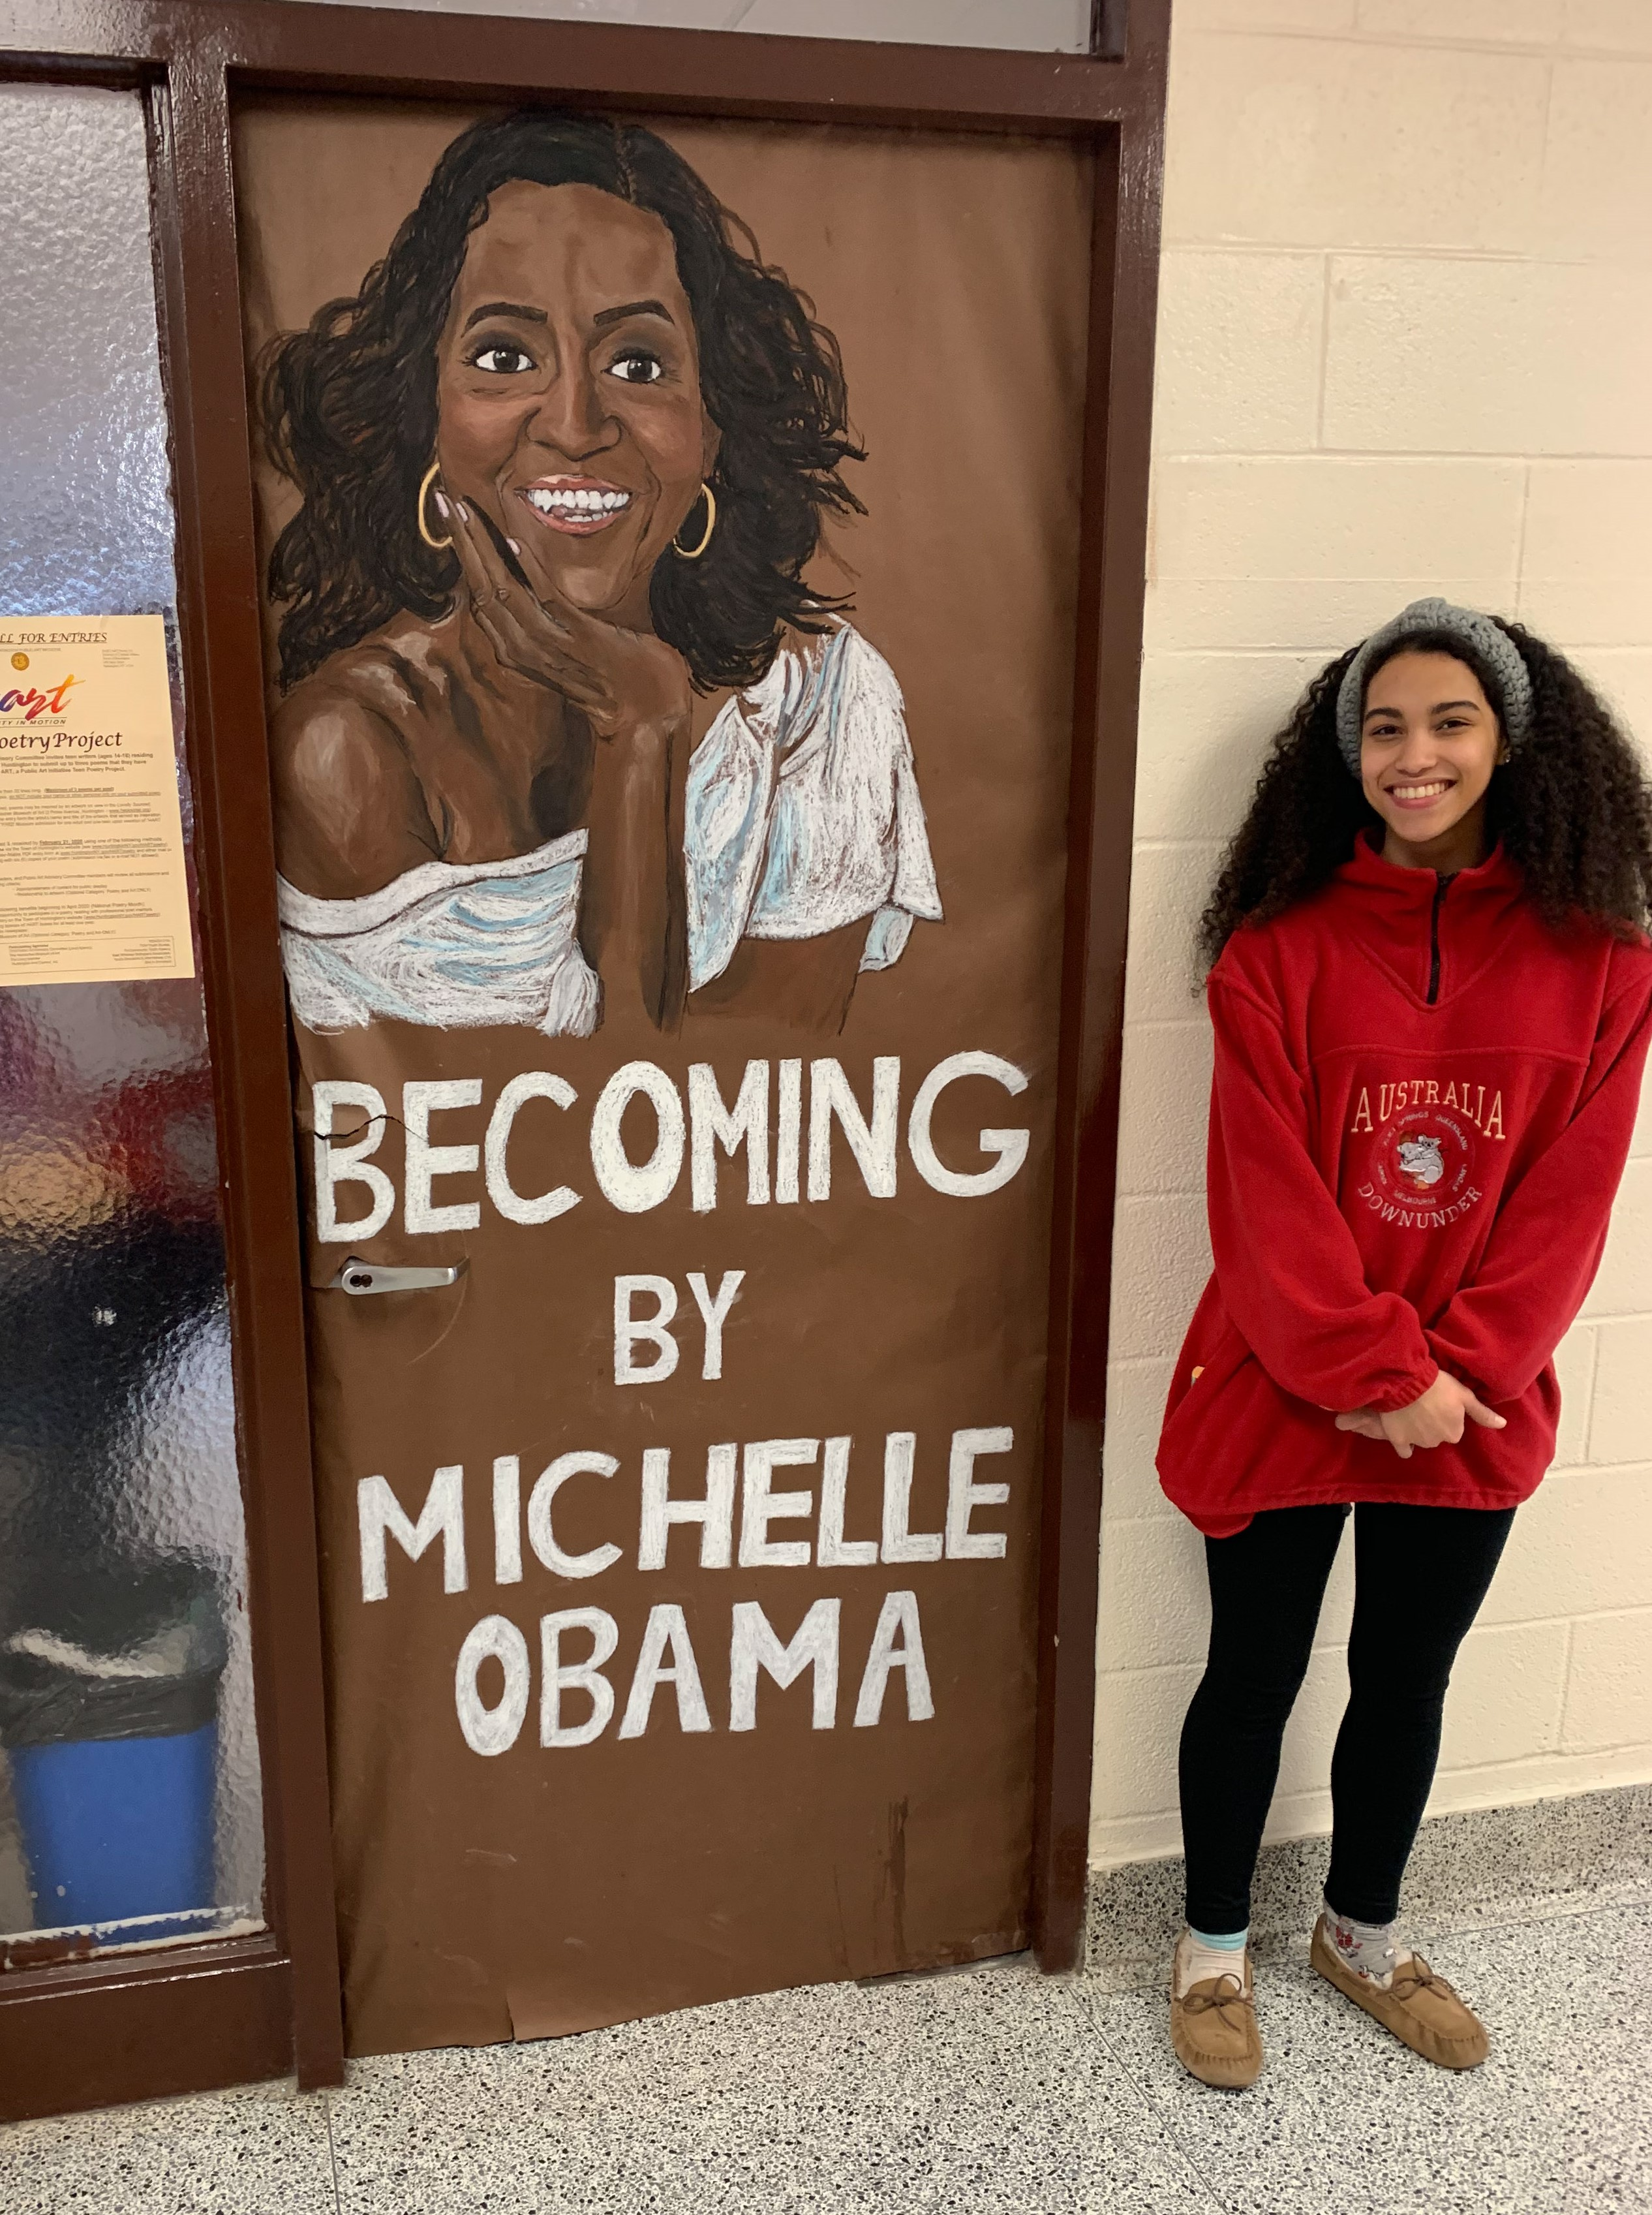 Hills East AASO Celebrates Black History Month By Decorating English Hall With Book Covers